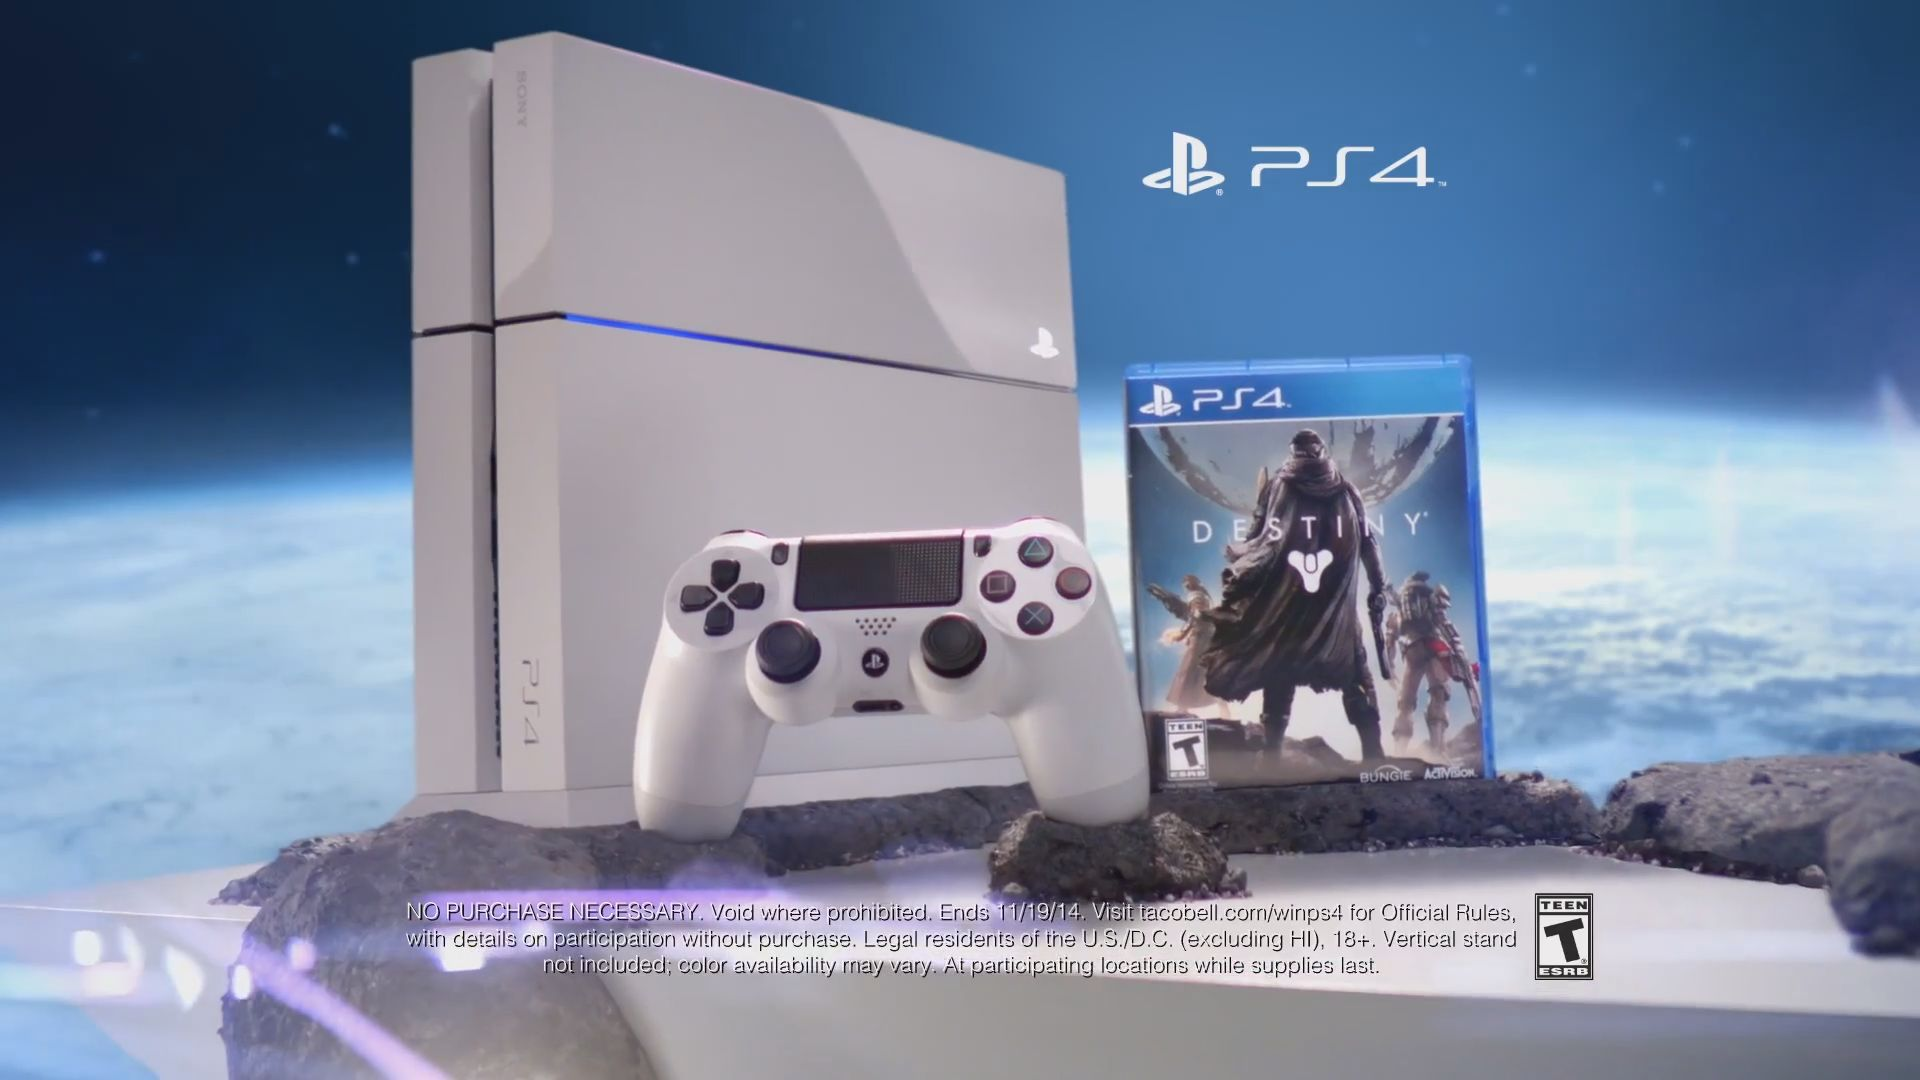 PS4 Commercial From Taco Bell Is Absolutely Hilarious Delightfully Pokes Fun At Destiny